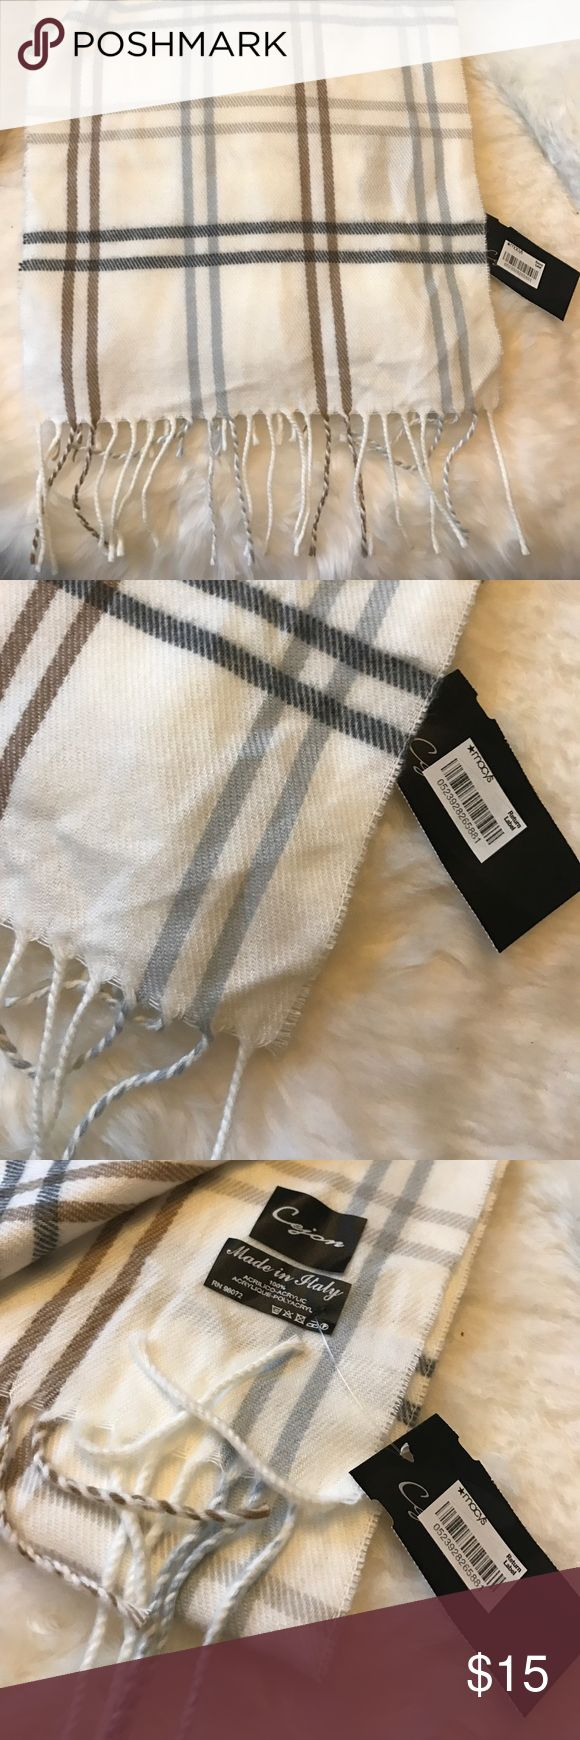 MACY's Scarf Beautiful cream scarf with tassels from Macy's in a minimalist check pattern. Tags still on and never worn. Received as a gift and have something similar. Great for spring and winter ! Macy's Accessories Scarves & Wraps